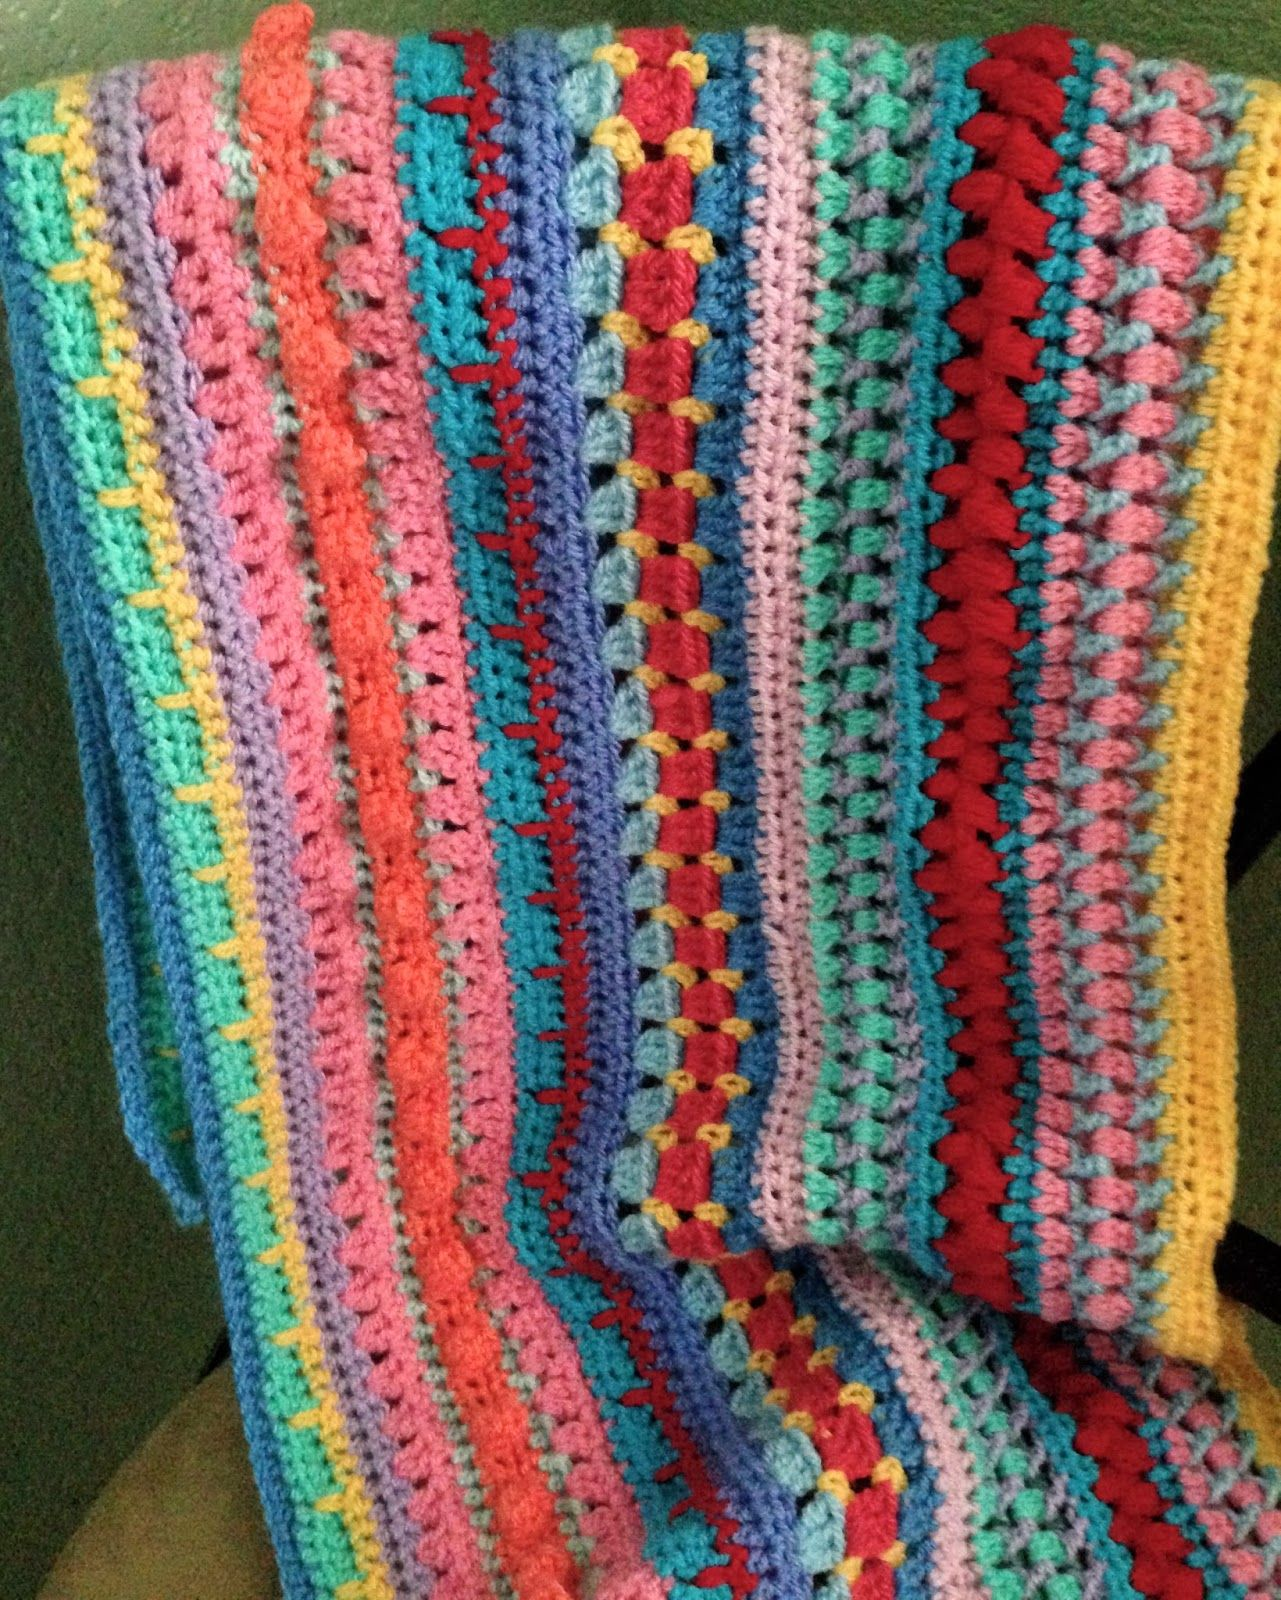 Multi stitch striped blanket free pattern by lynne samaan of das multi stitch striped blanket free pattern by lynne samaan of das crochet connection bankloansurffo Image collections